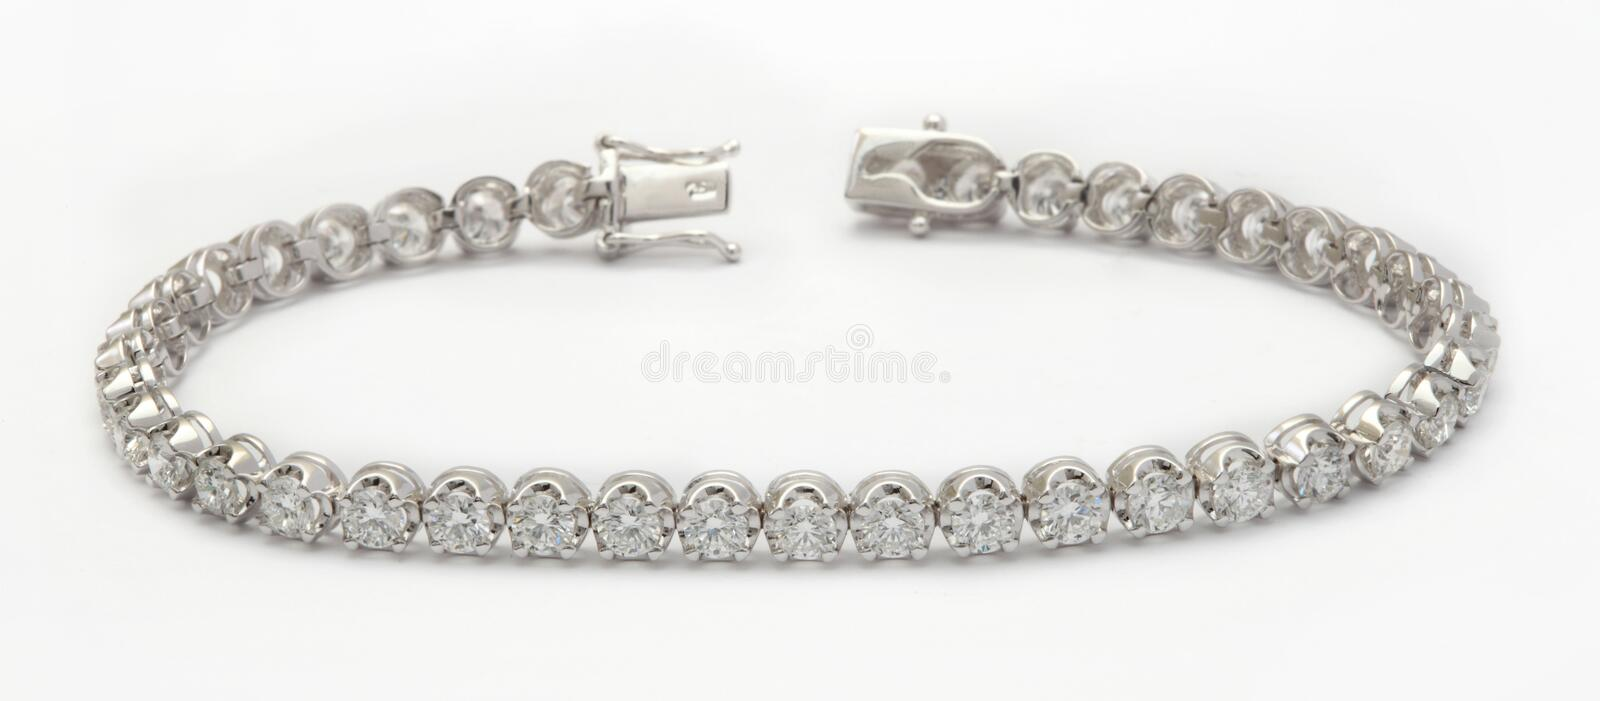 Diamond bracelet on white royalty free stock image